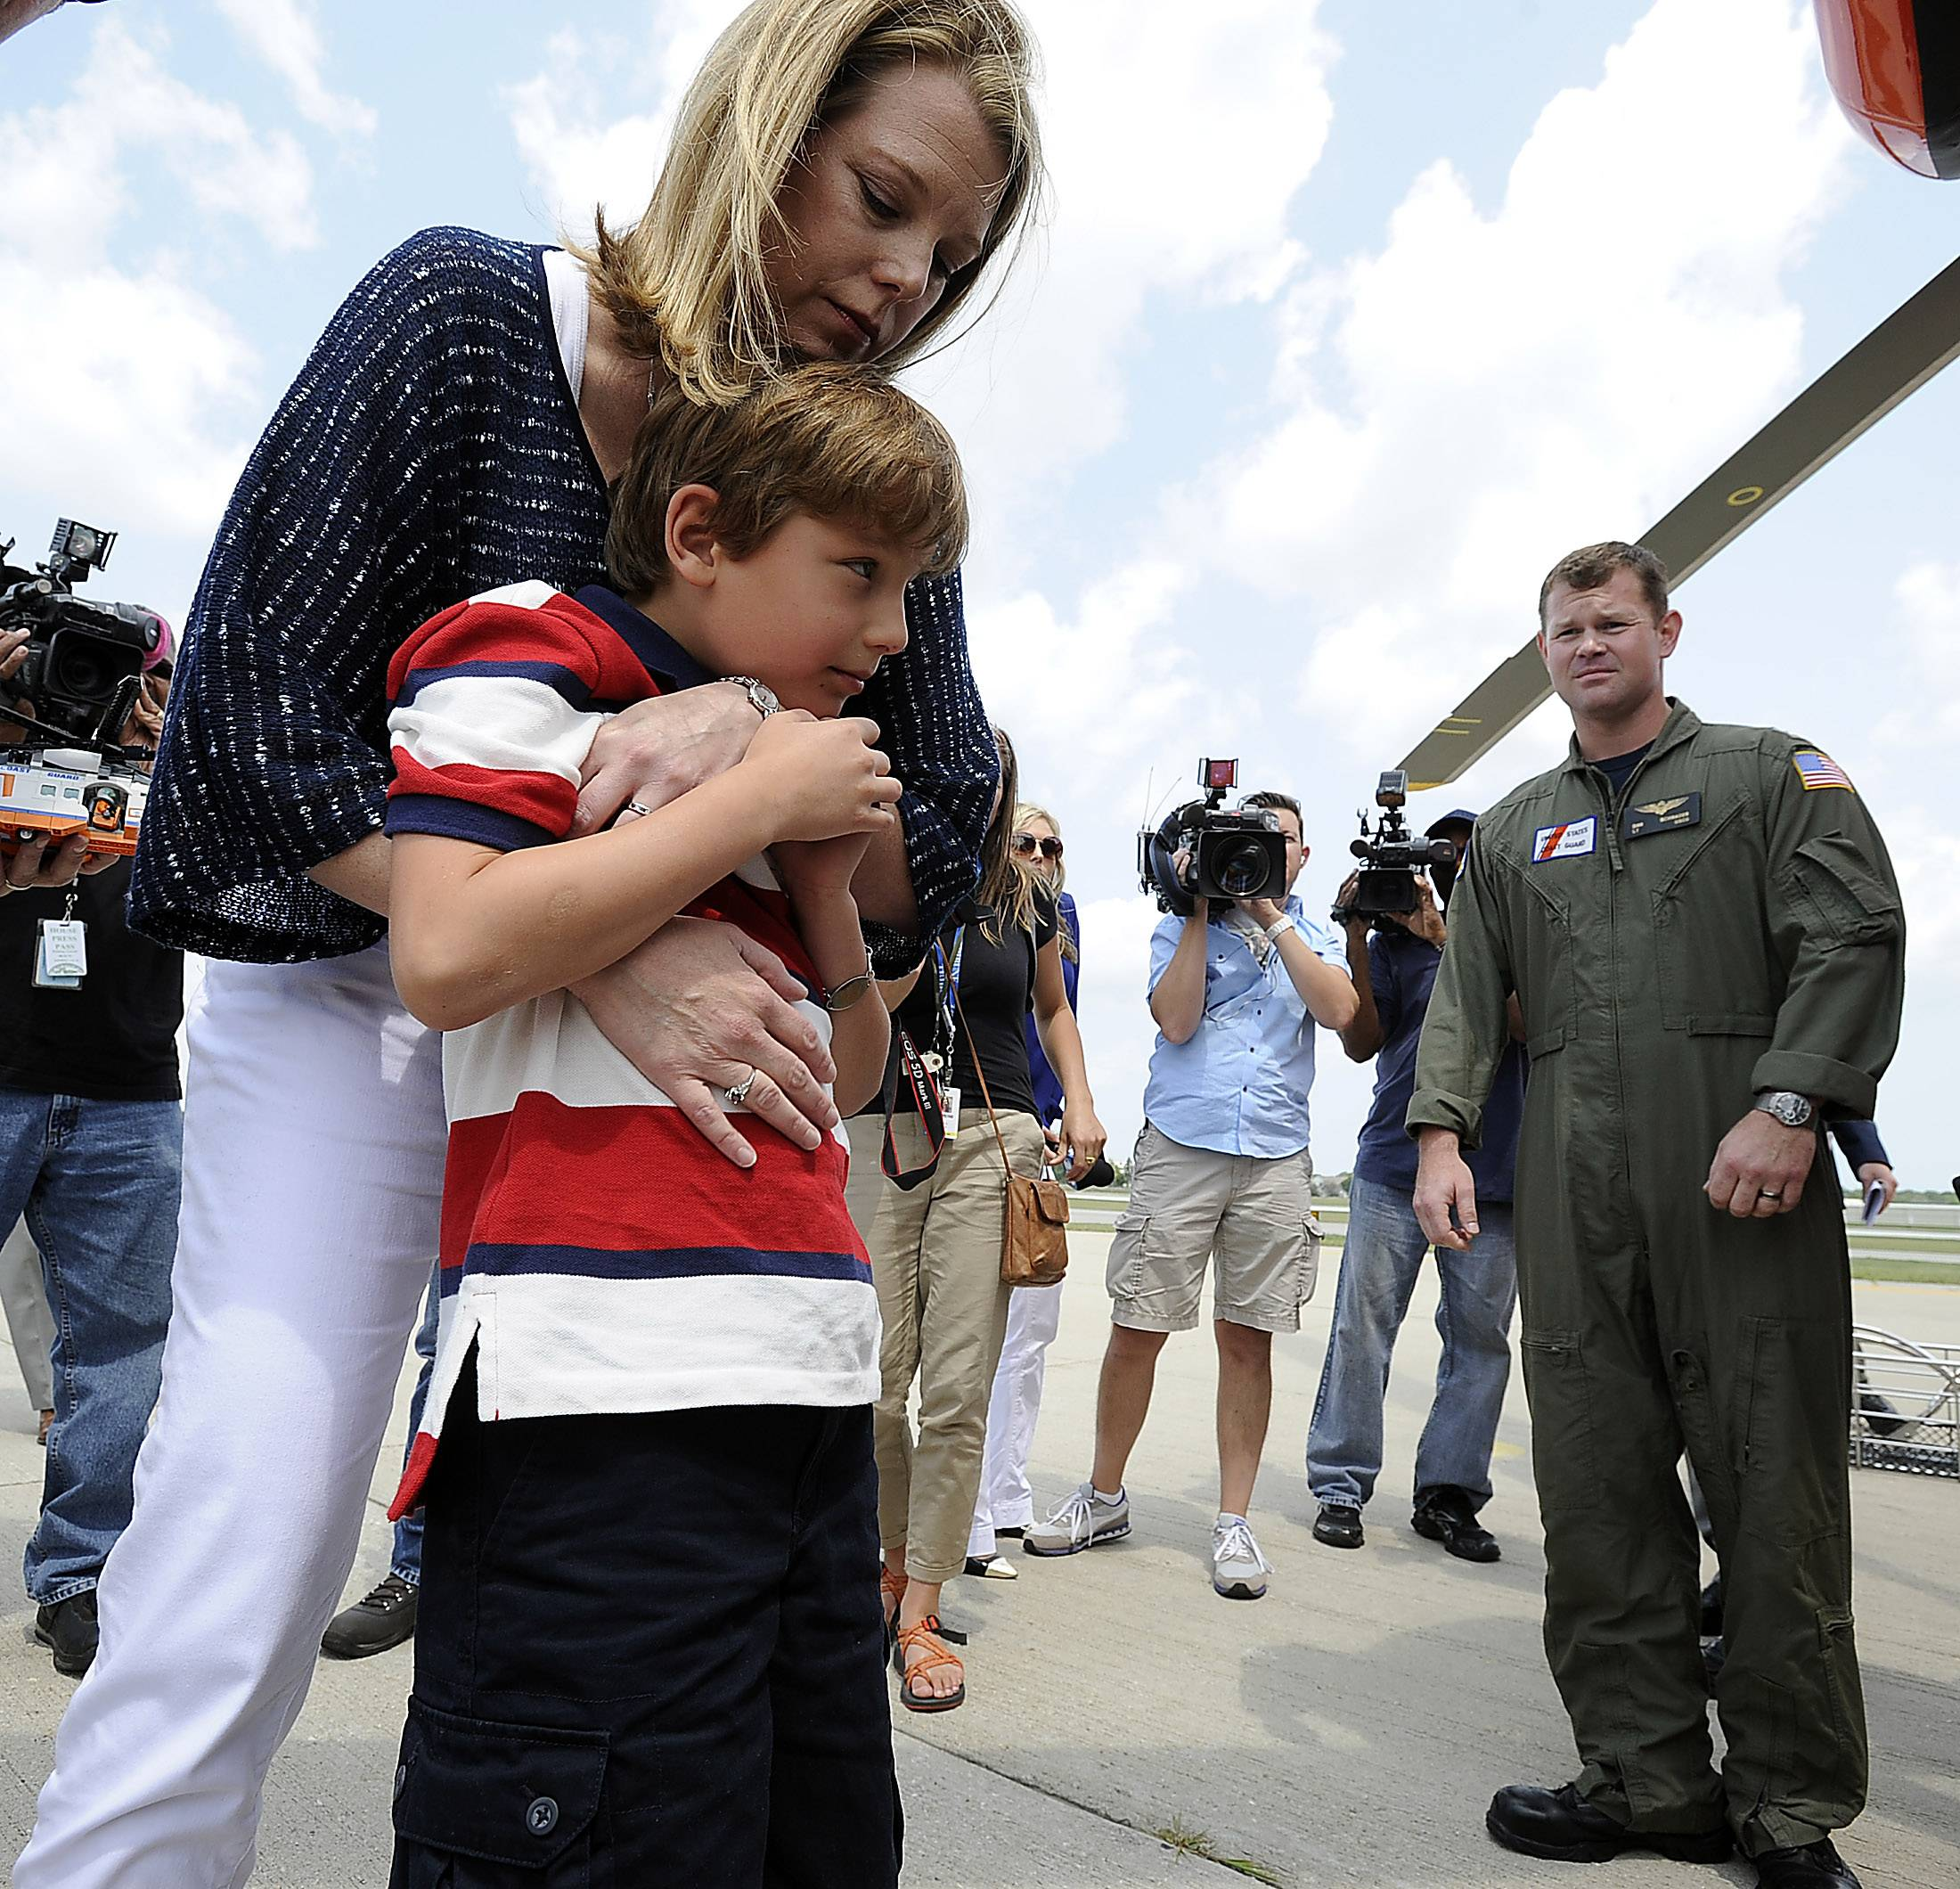 Tommy Alter, 9, of Highland Park is hugged by his mother, Leslie, during a reunion with his Coast Guard rescuers Tuesday. Nearby is Lt. Dan Schrader, the pilot of the mission.